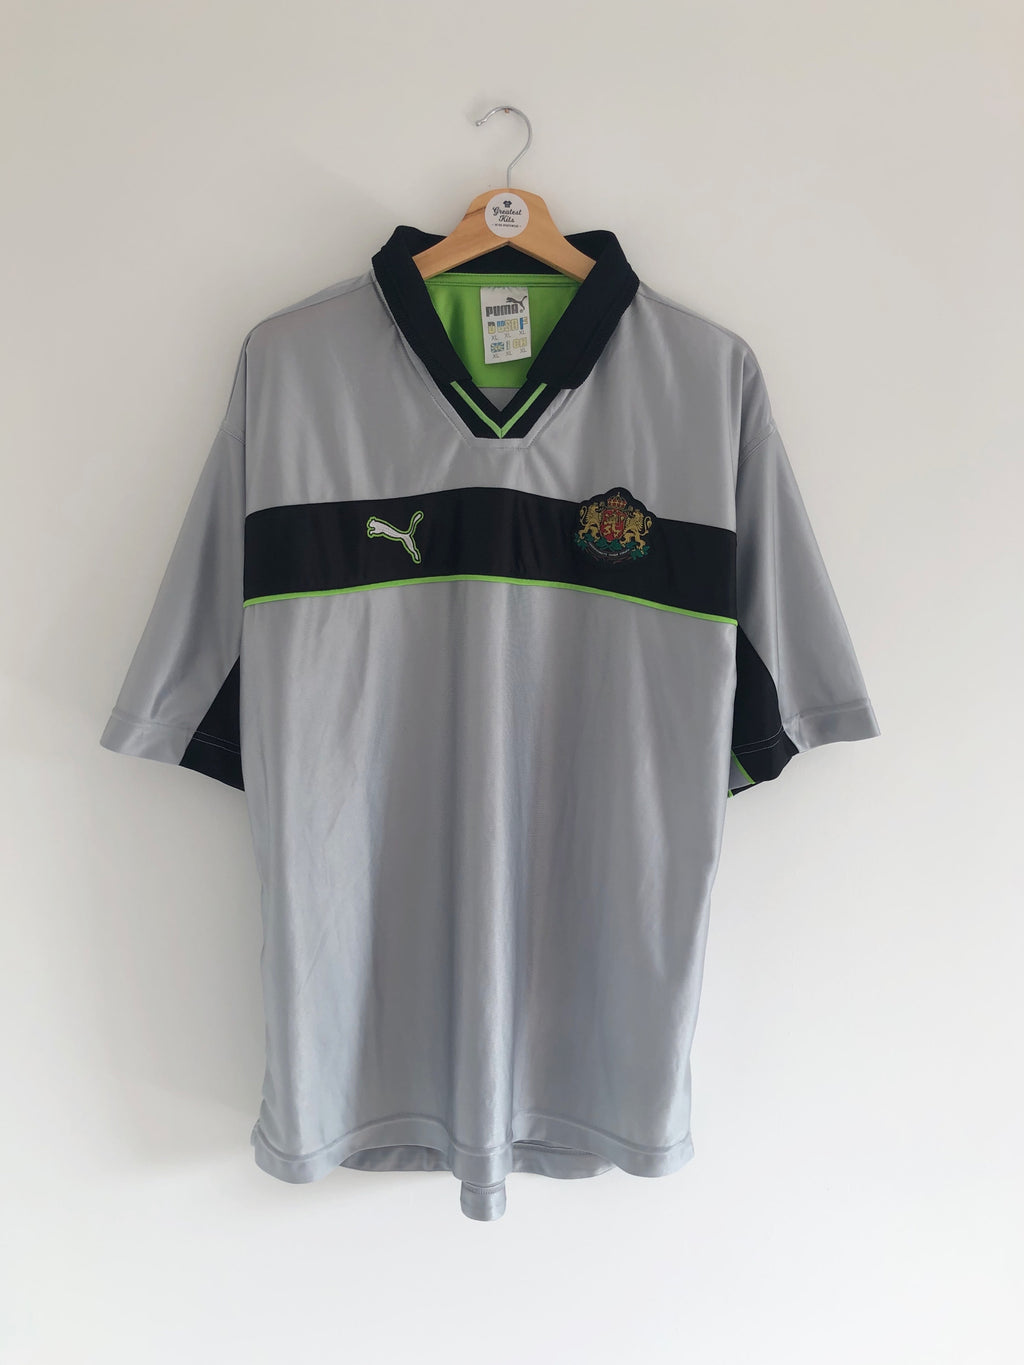 1998/00 Bulgaria GK S/S Shirt (XL) 8/10